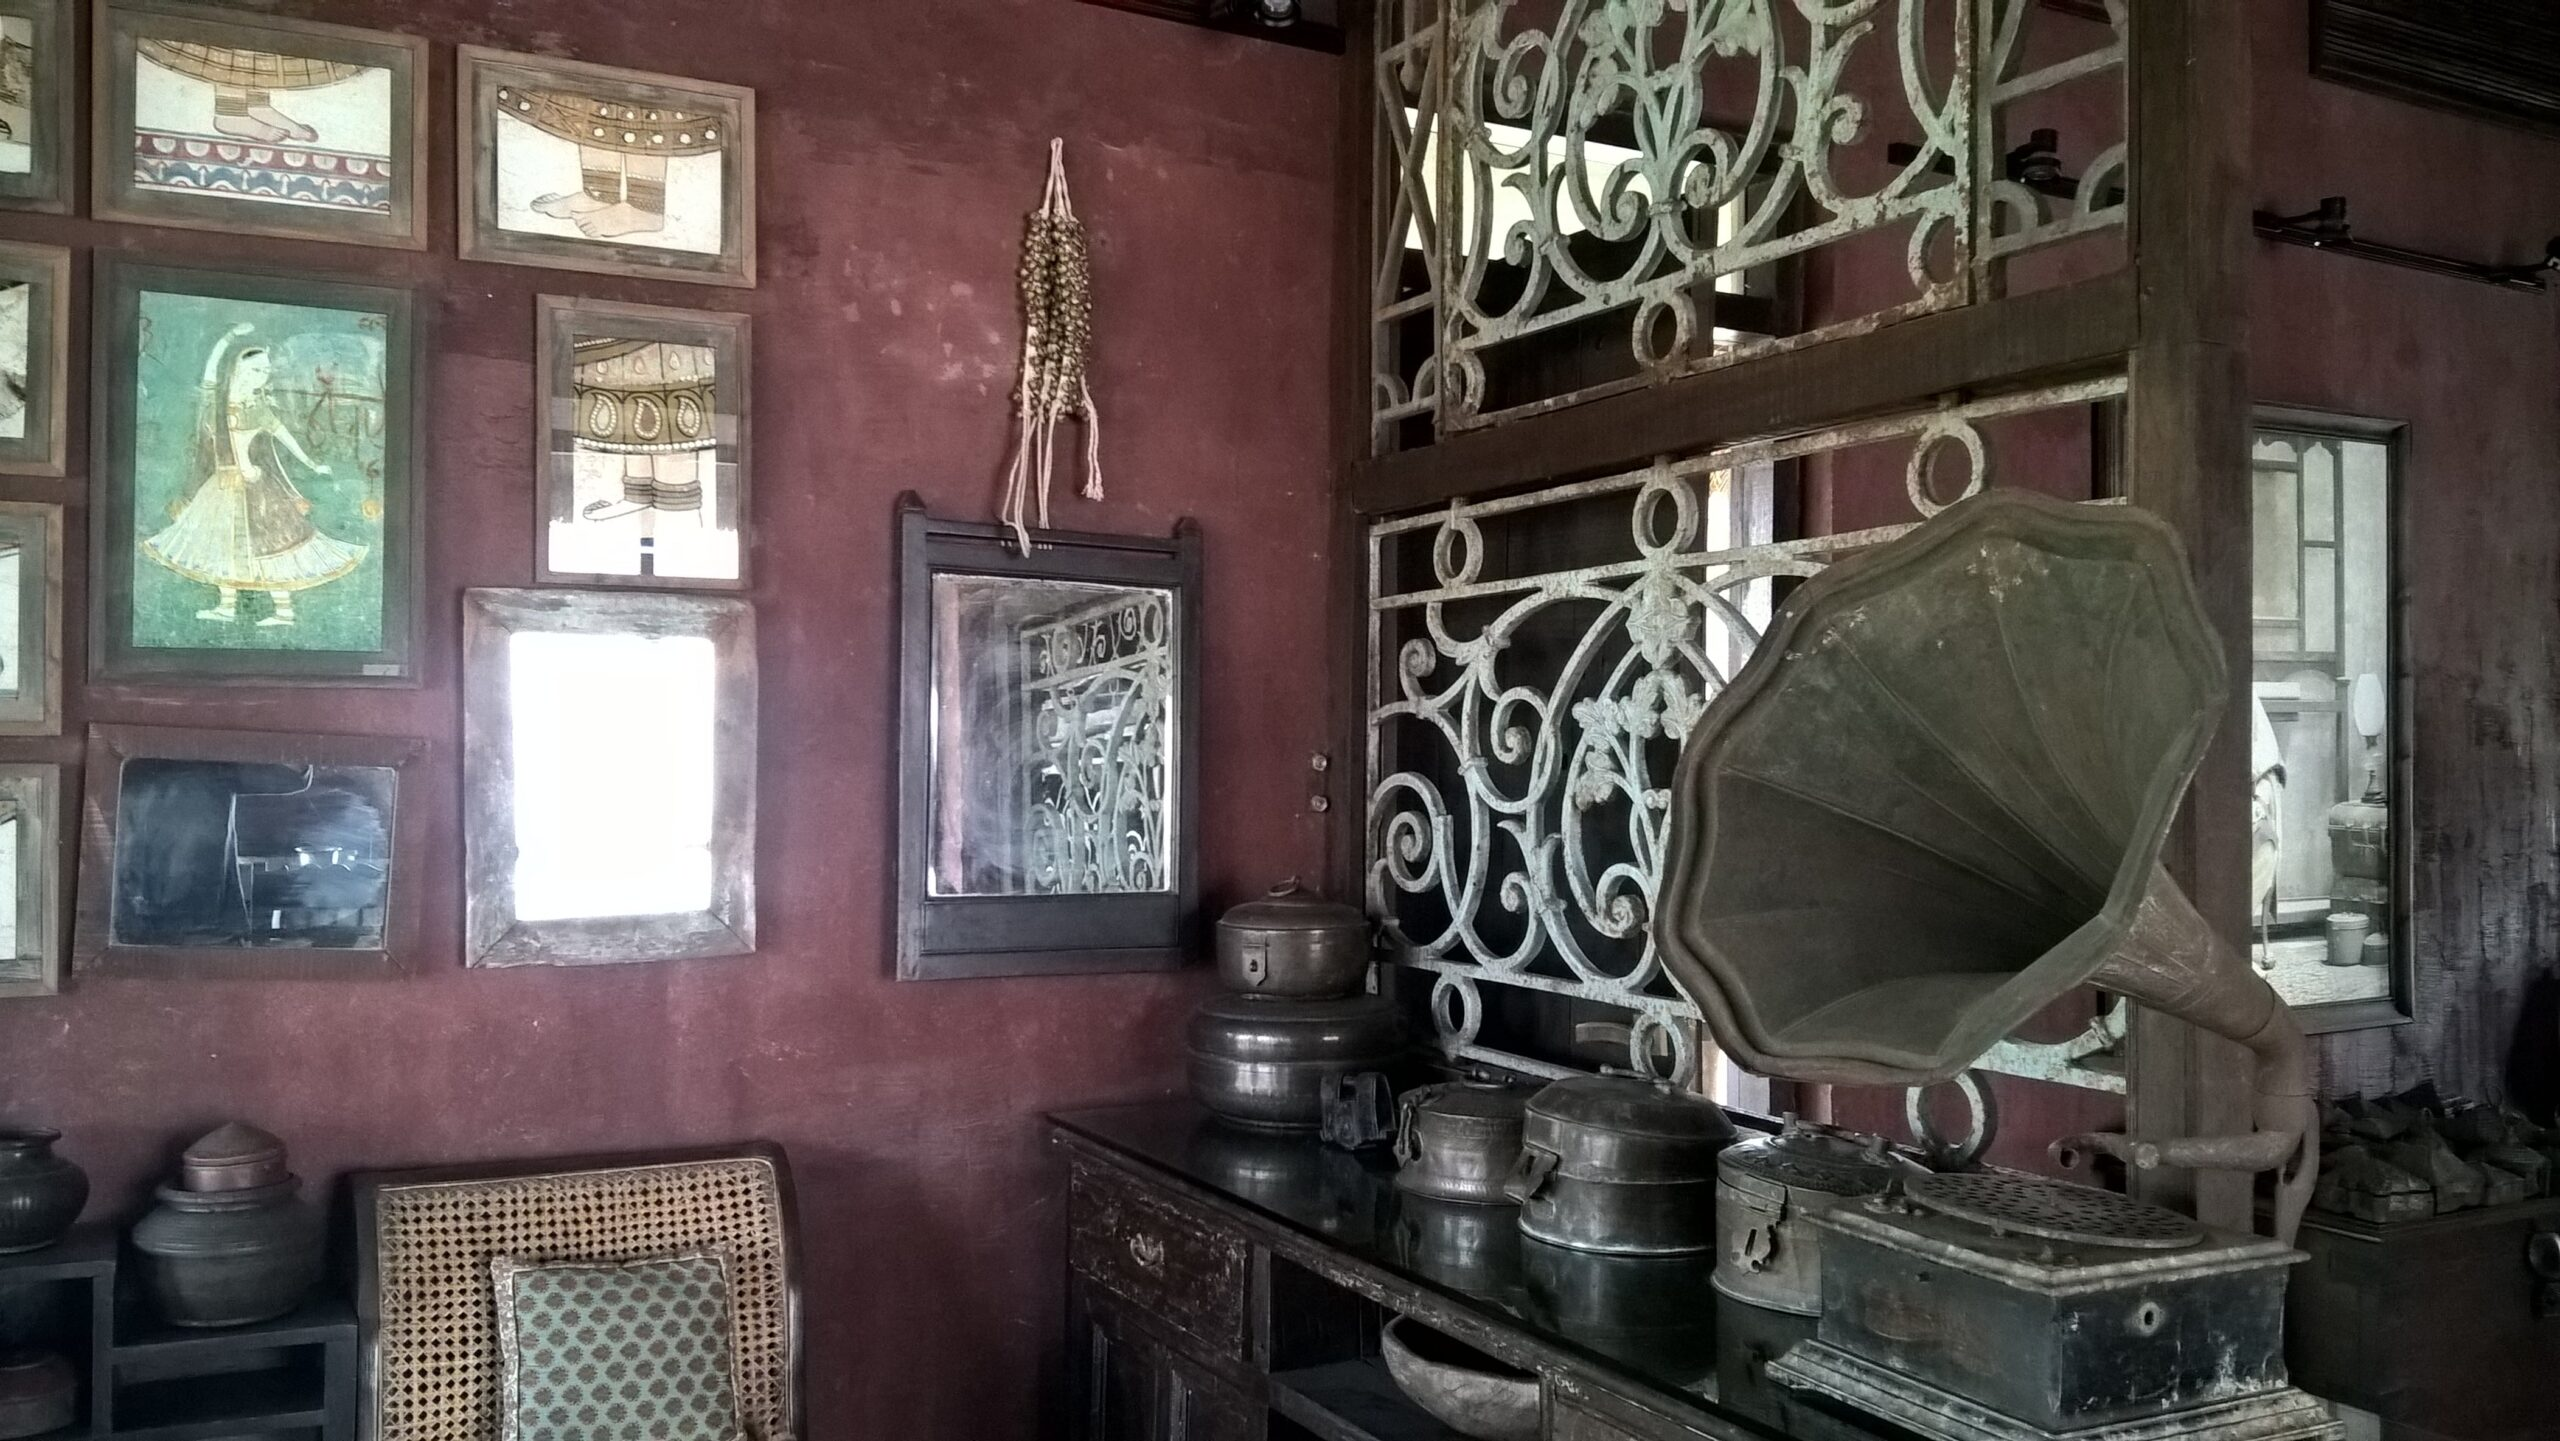 Collection of Antiques displayed at various places